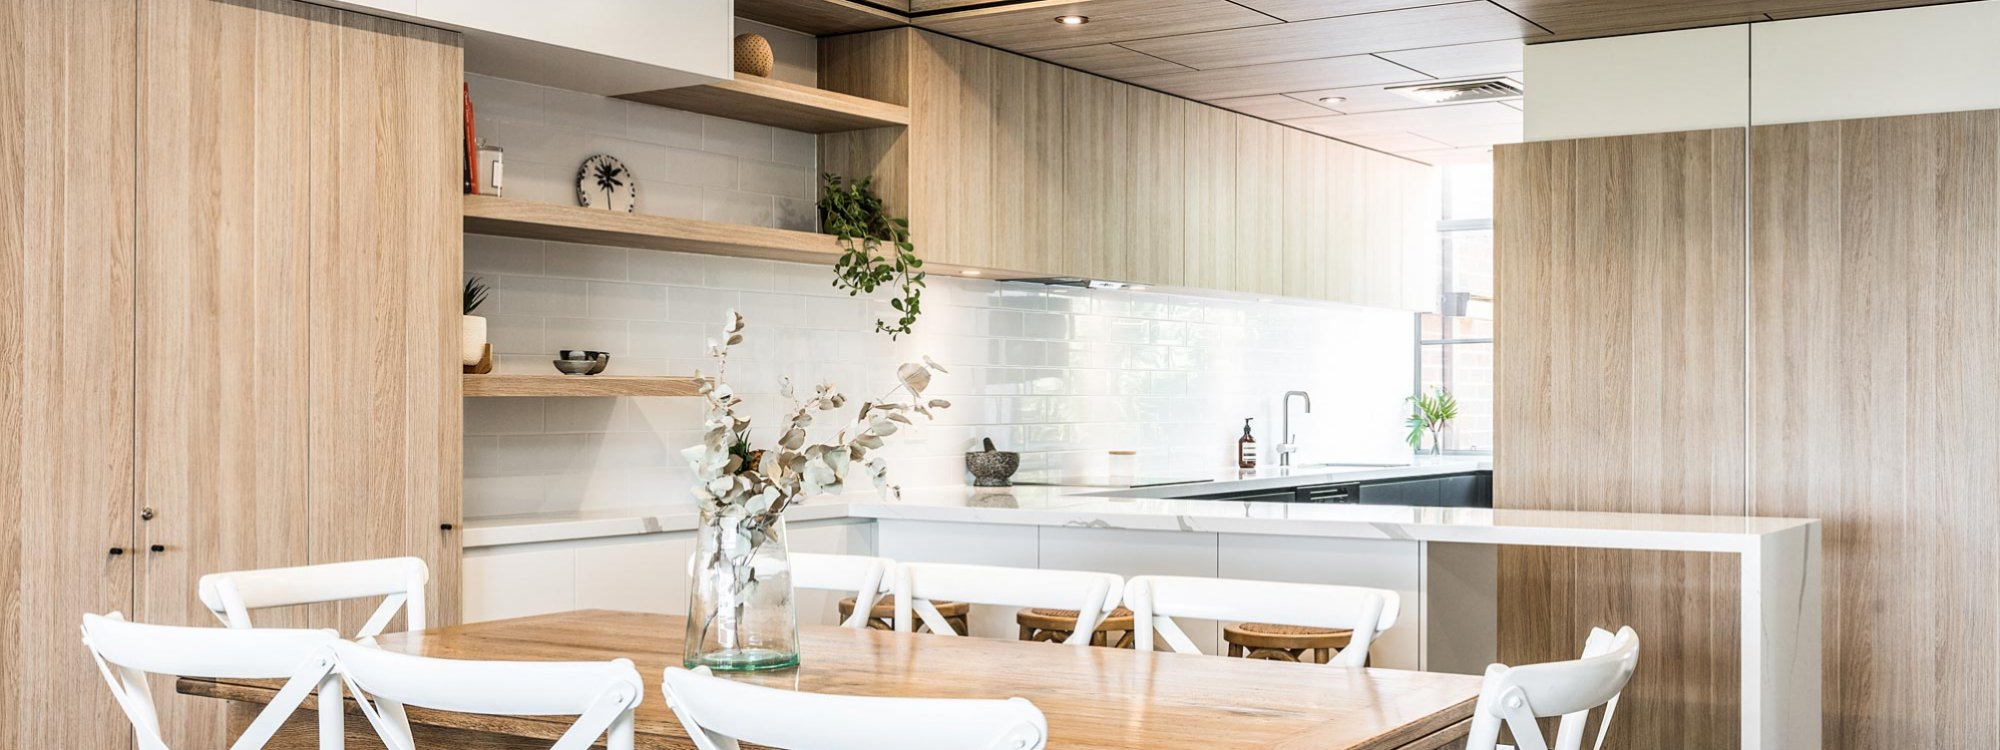 11 James Cook - Byron Bay - Kitchen and Dining